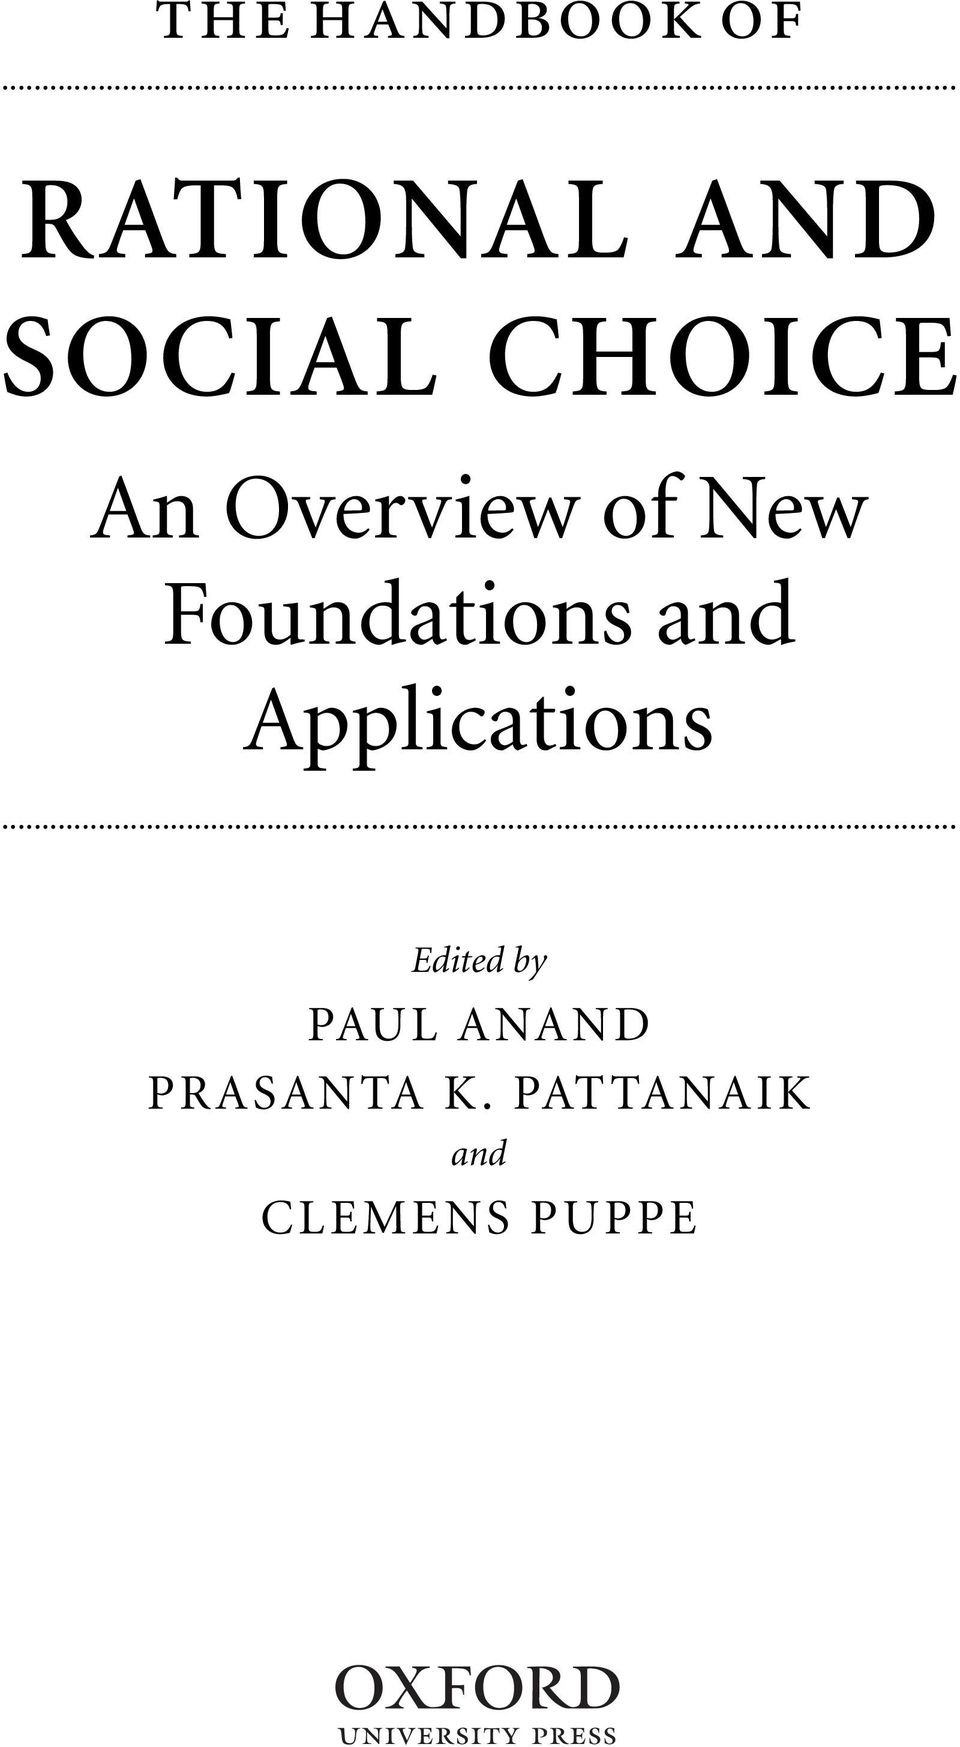 Overview of New Foundations and